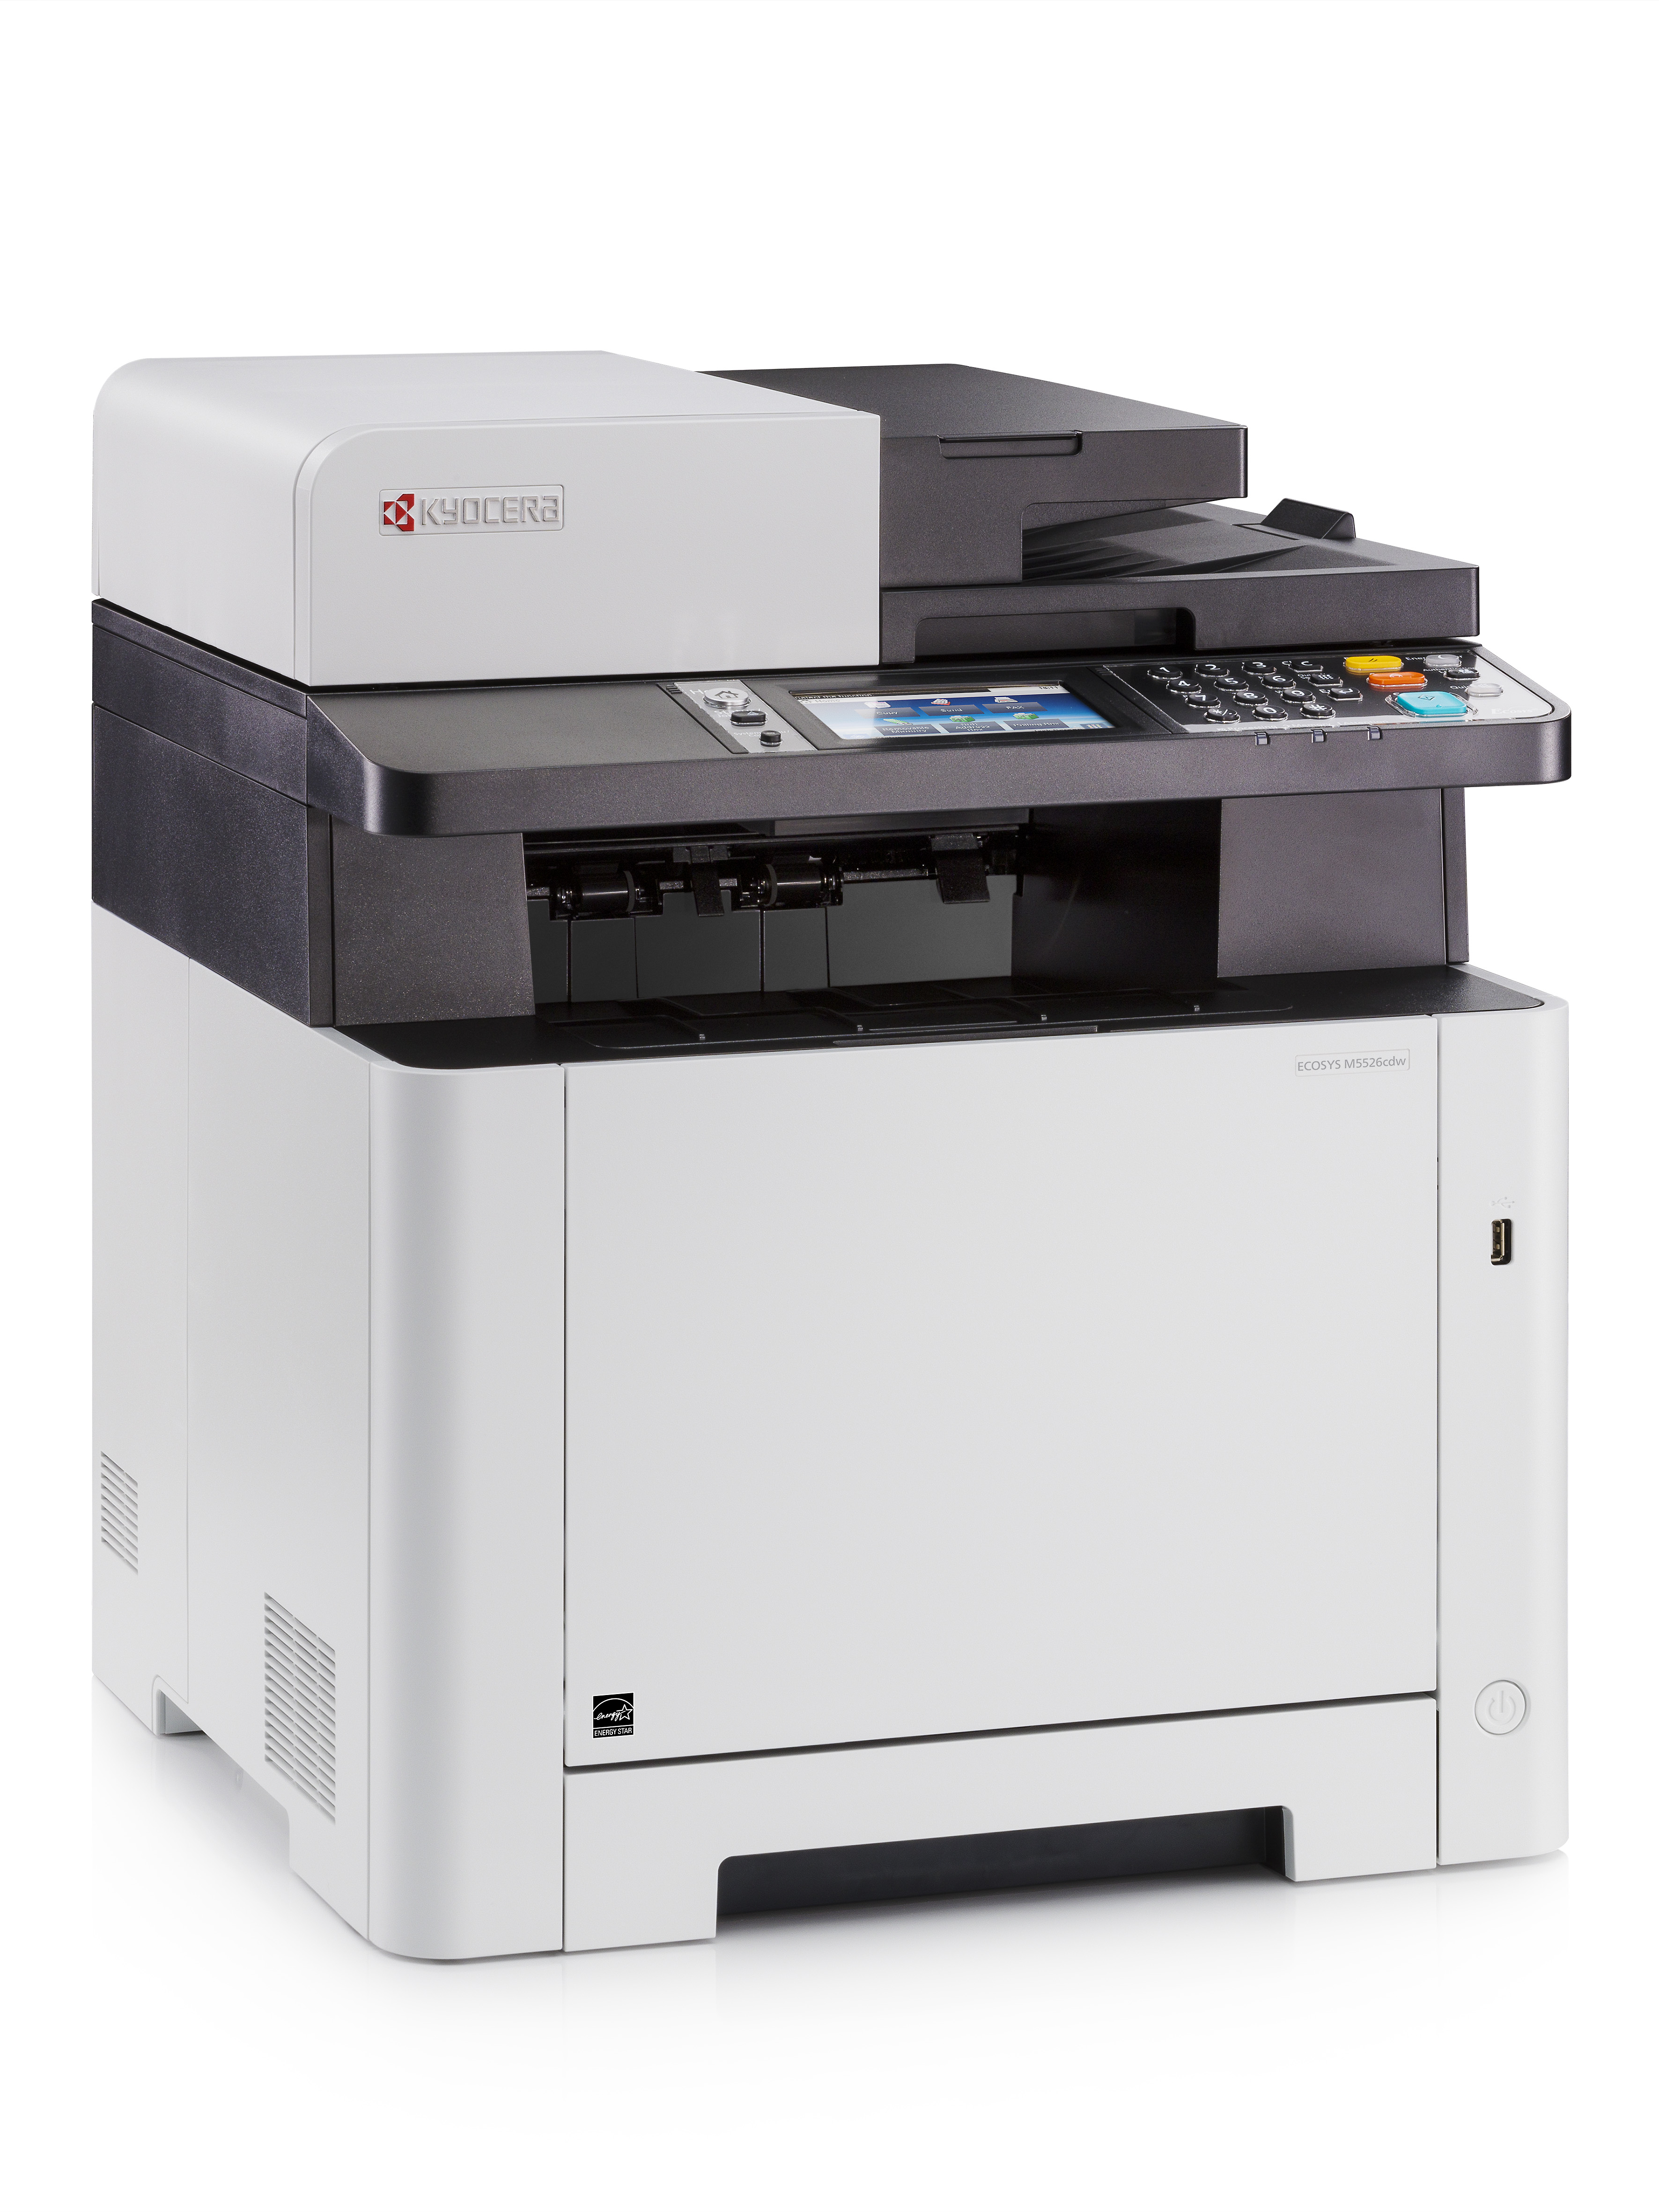 Kyocera, ECOSYS, M5526CDW, A4, 26PPM, WiFi, COLOUR, LASER, MFP,